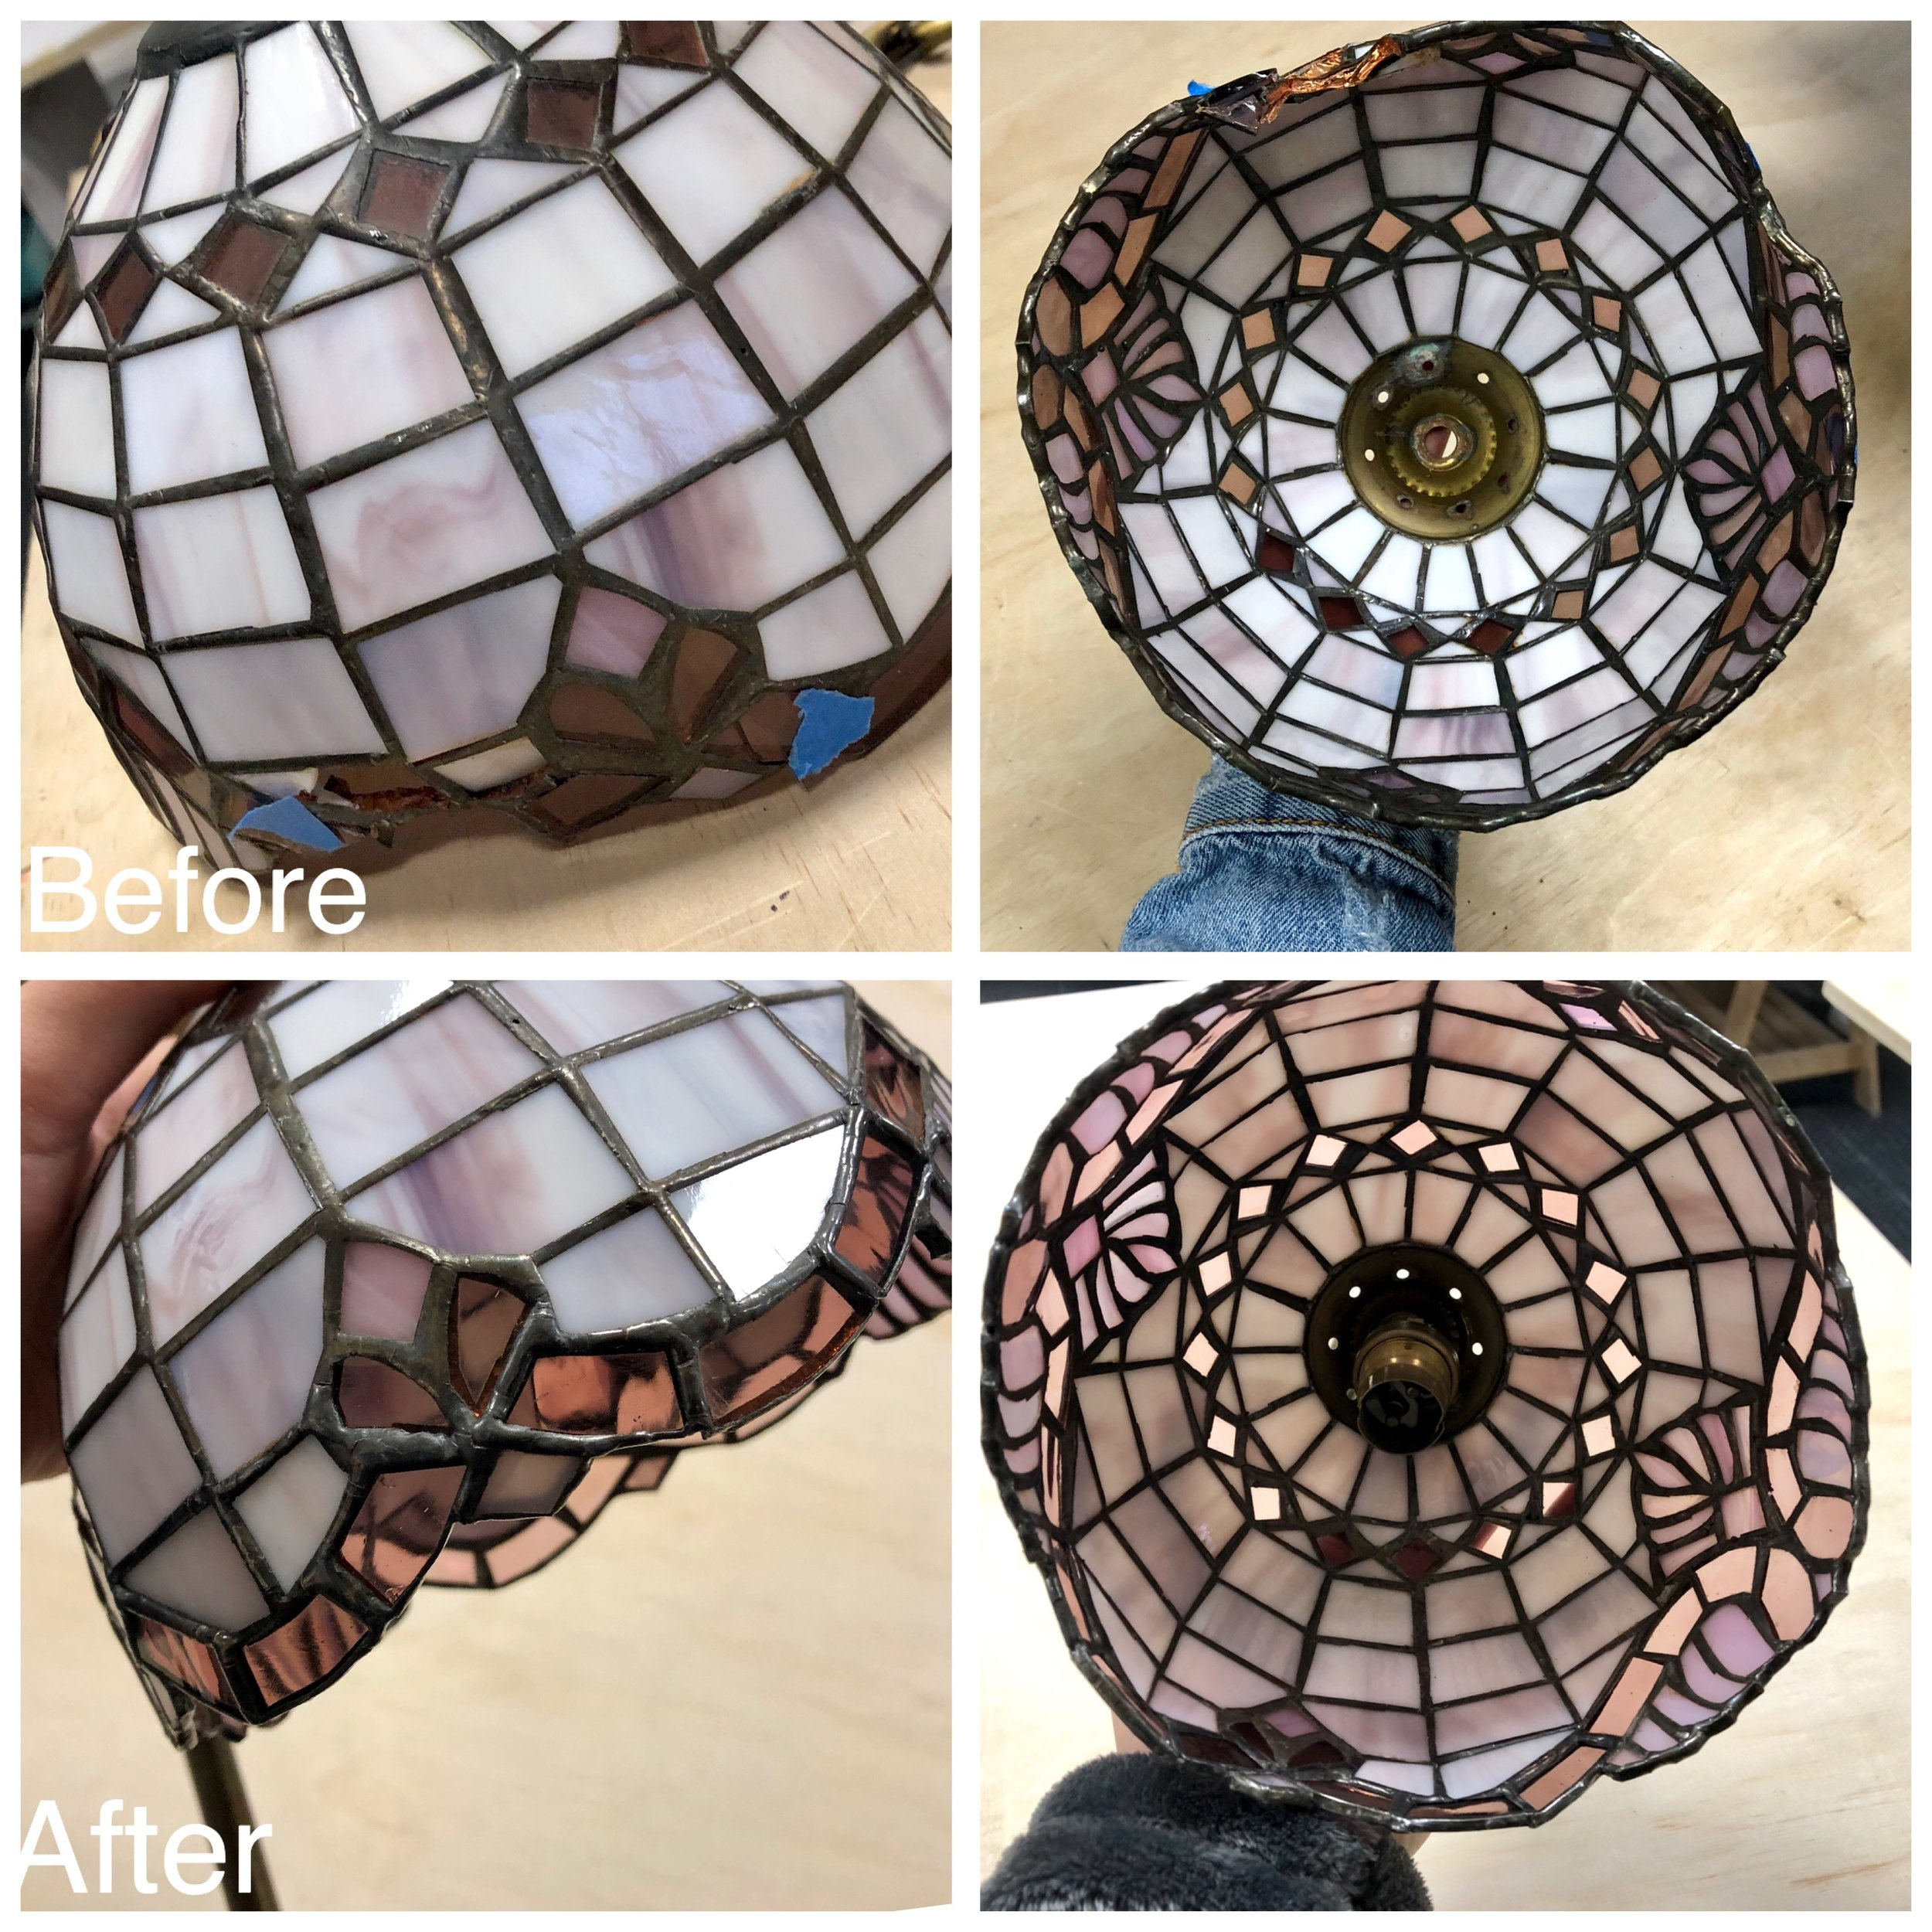 stained glass art glass bay area legacy glass studios antique glass old repair lampshade purple small traditional before after pink heirloom opaque translucent wispy.JPG